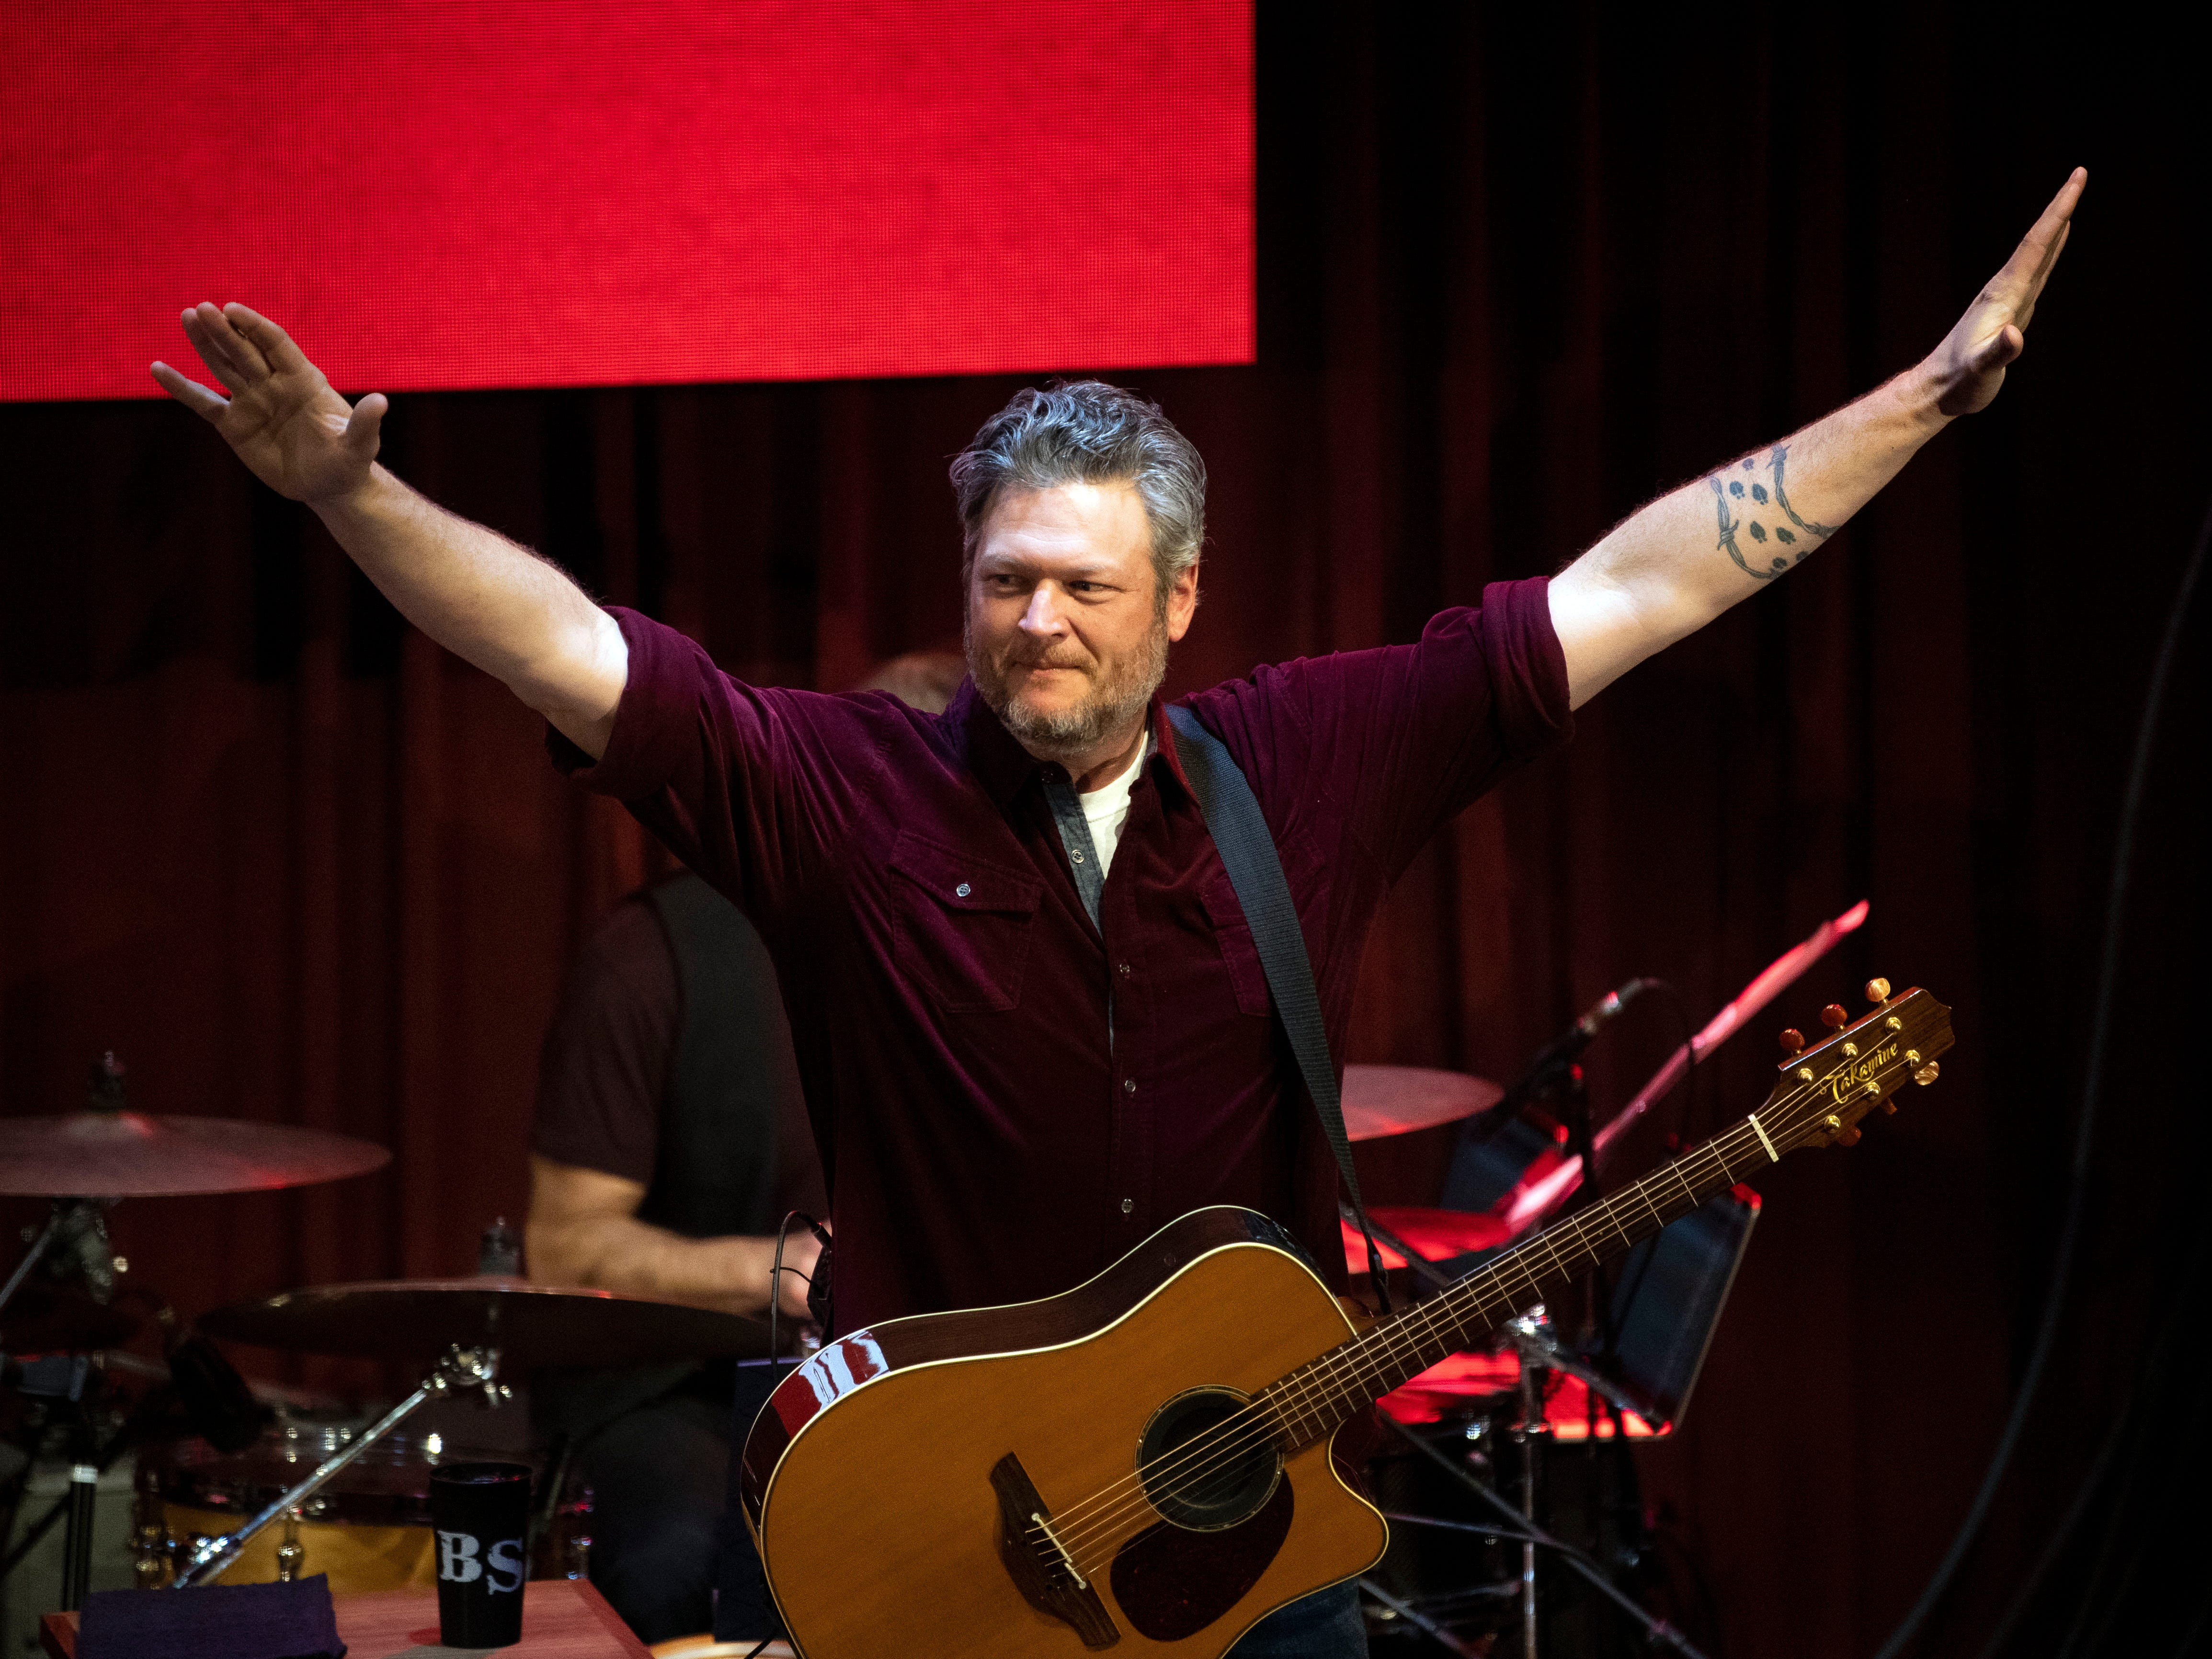 Blake Shelton greets the crowd as he takes the stage at the grand opening celebration of Ole Red Gatlinburg on Wednesday, March 13, 2019.